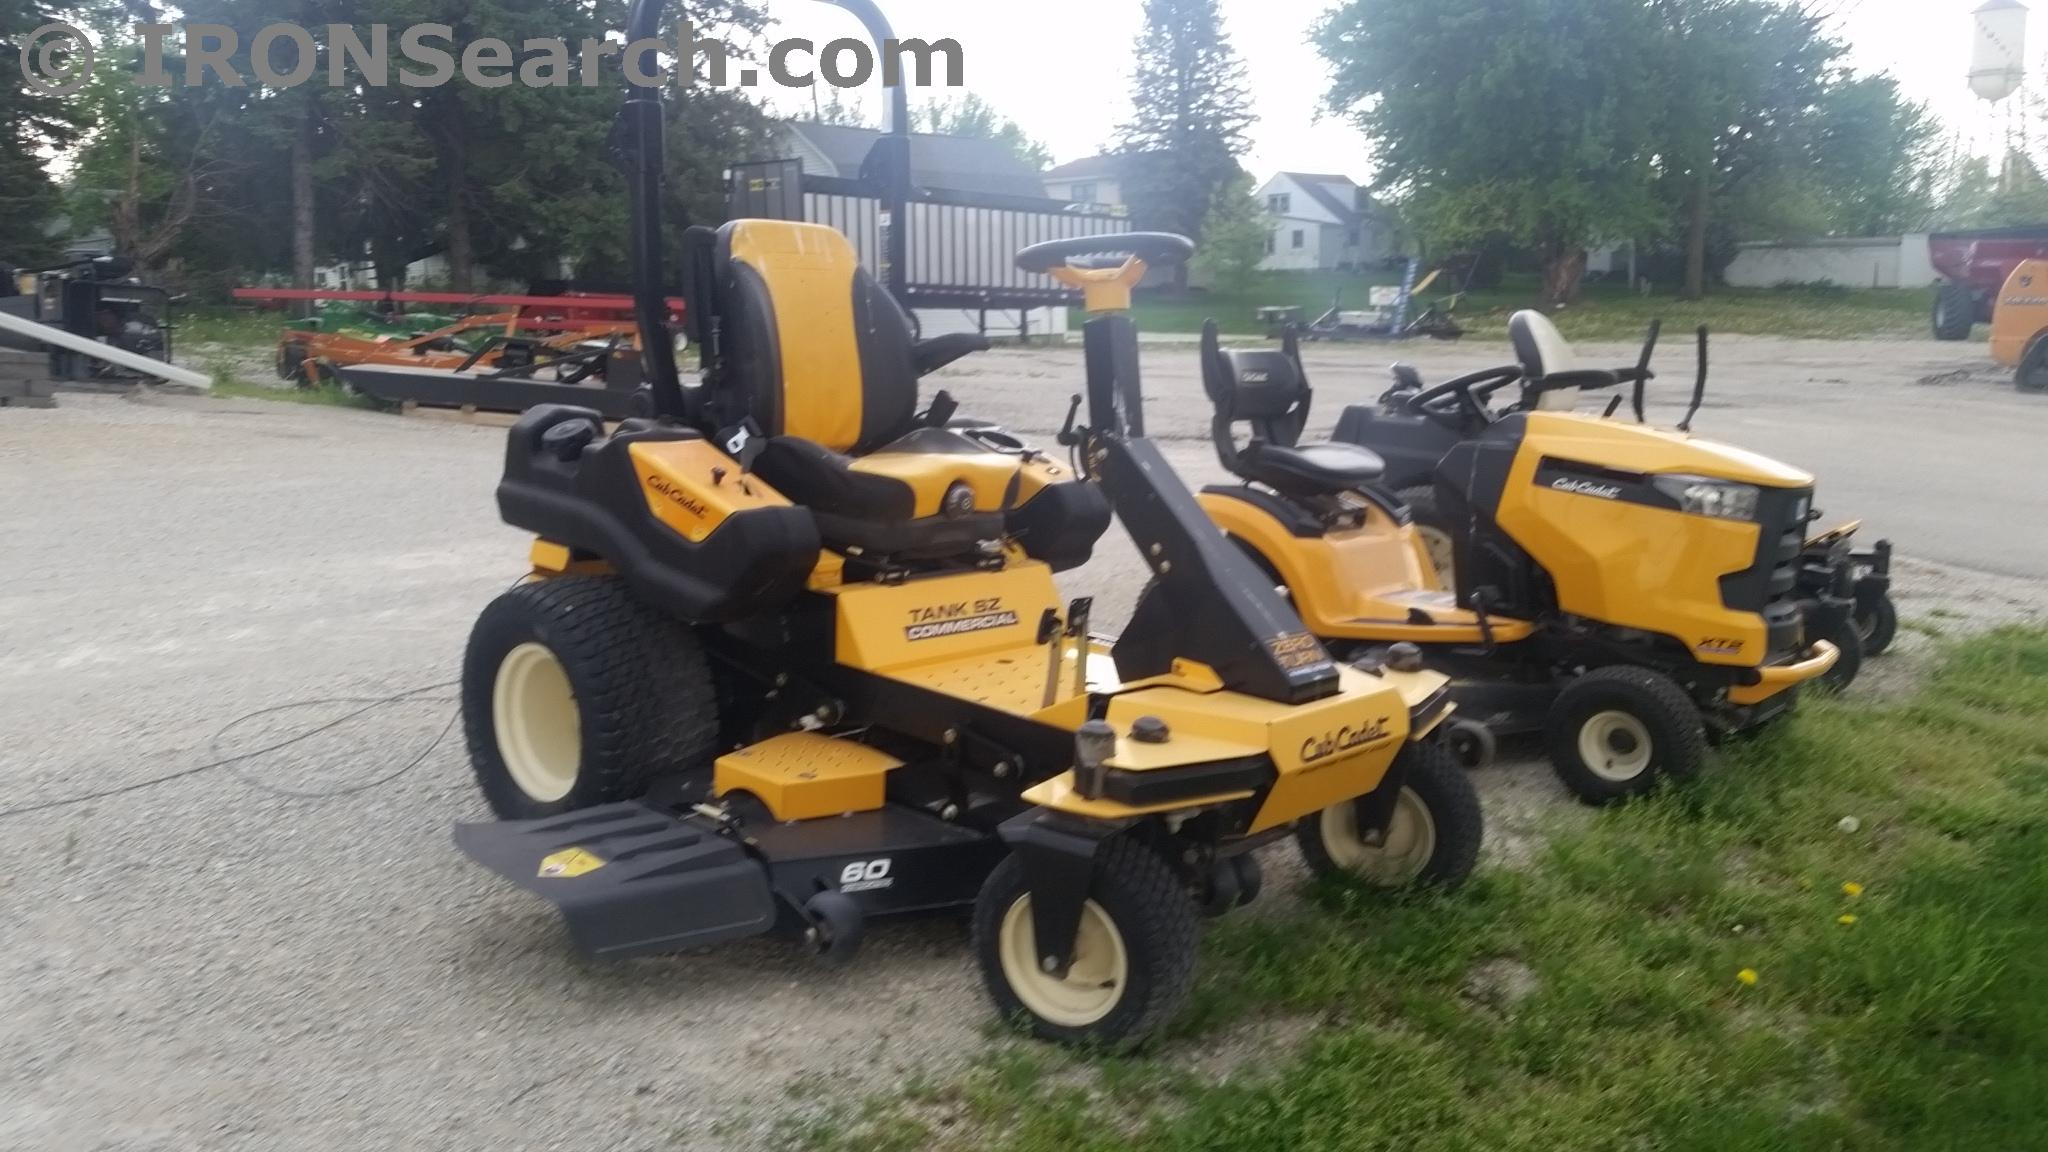 Inventory from Cub Cadet, Kinze and Gehl Chatfield Chatfield